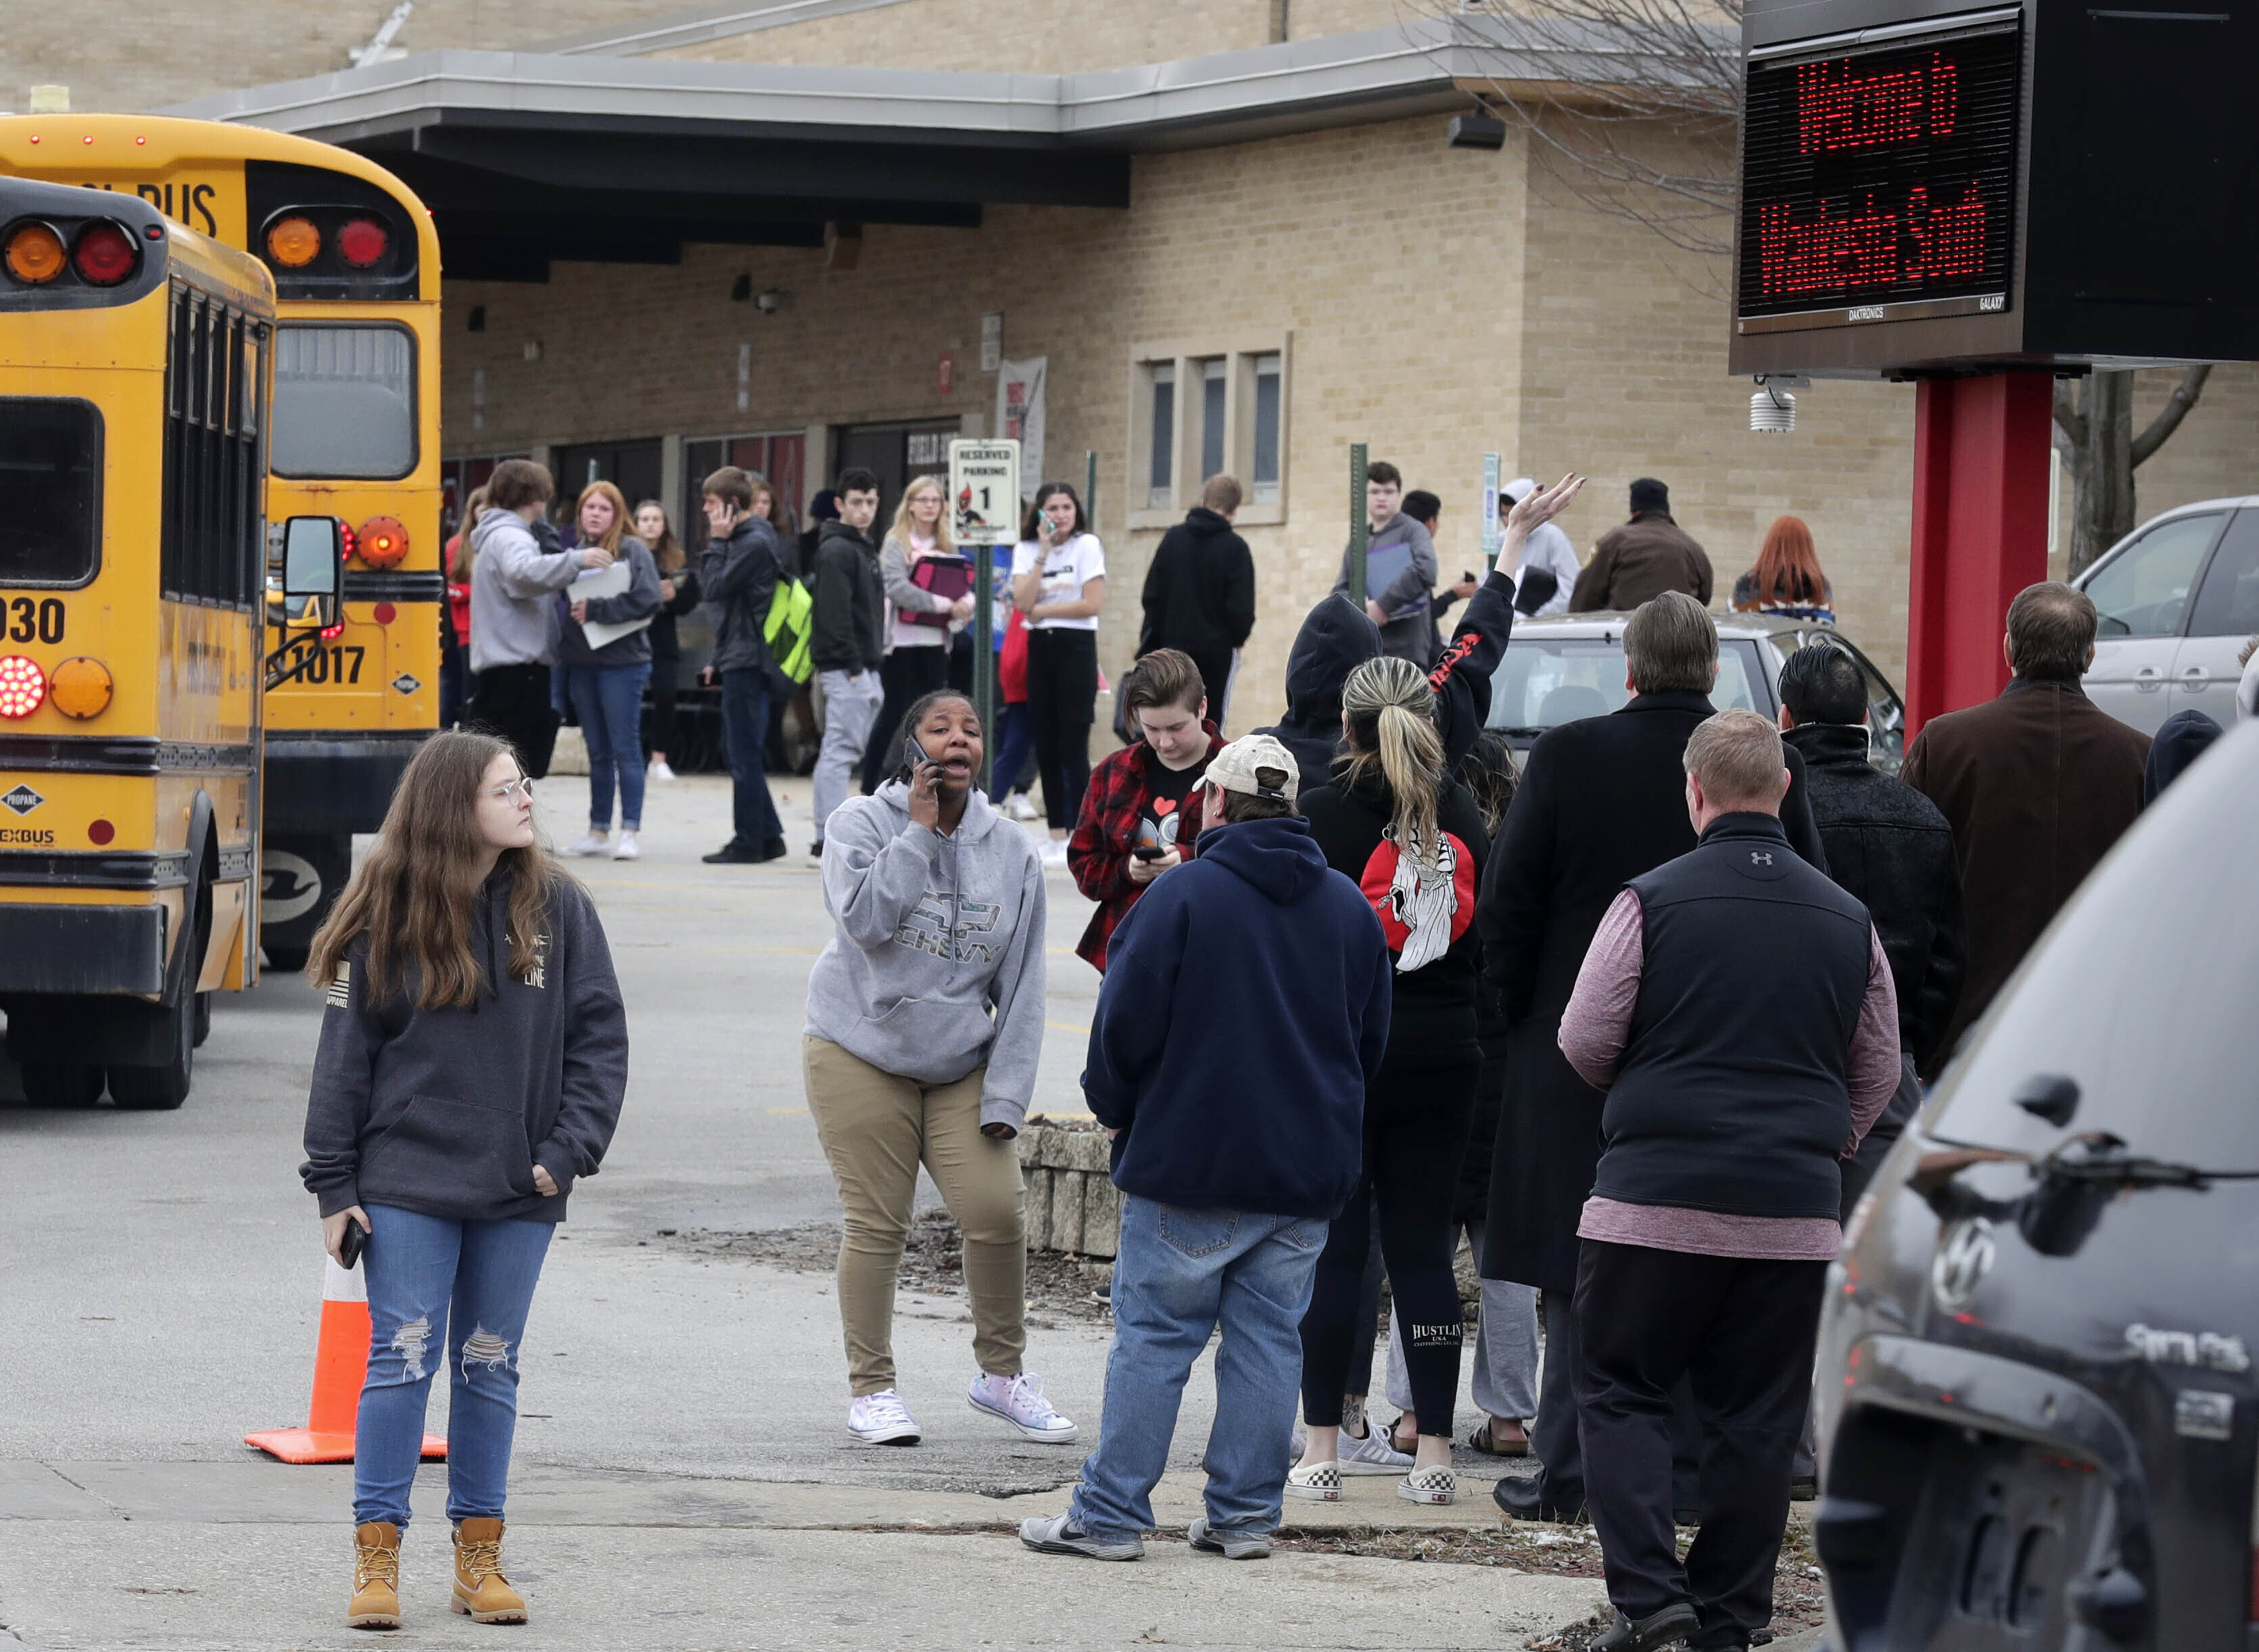 Waukesha South High School students find their waiting parents and friends and hug after evacuated the building after police shot an armed student in a classroom on Monday, Dec. 2, 2019.